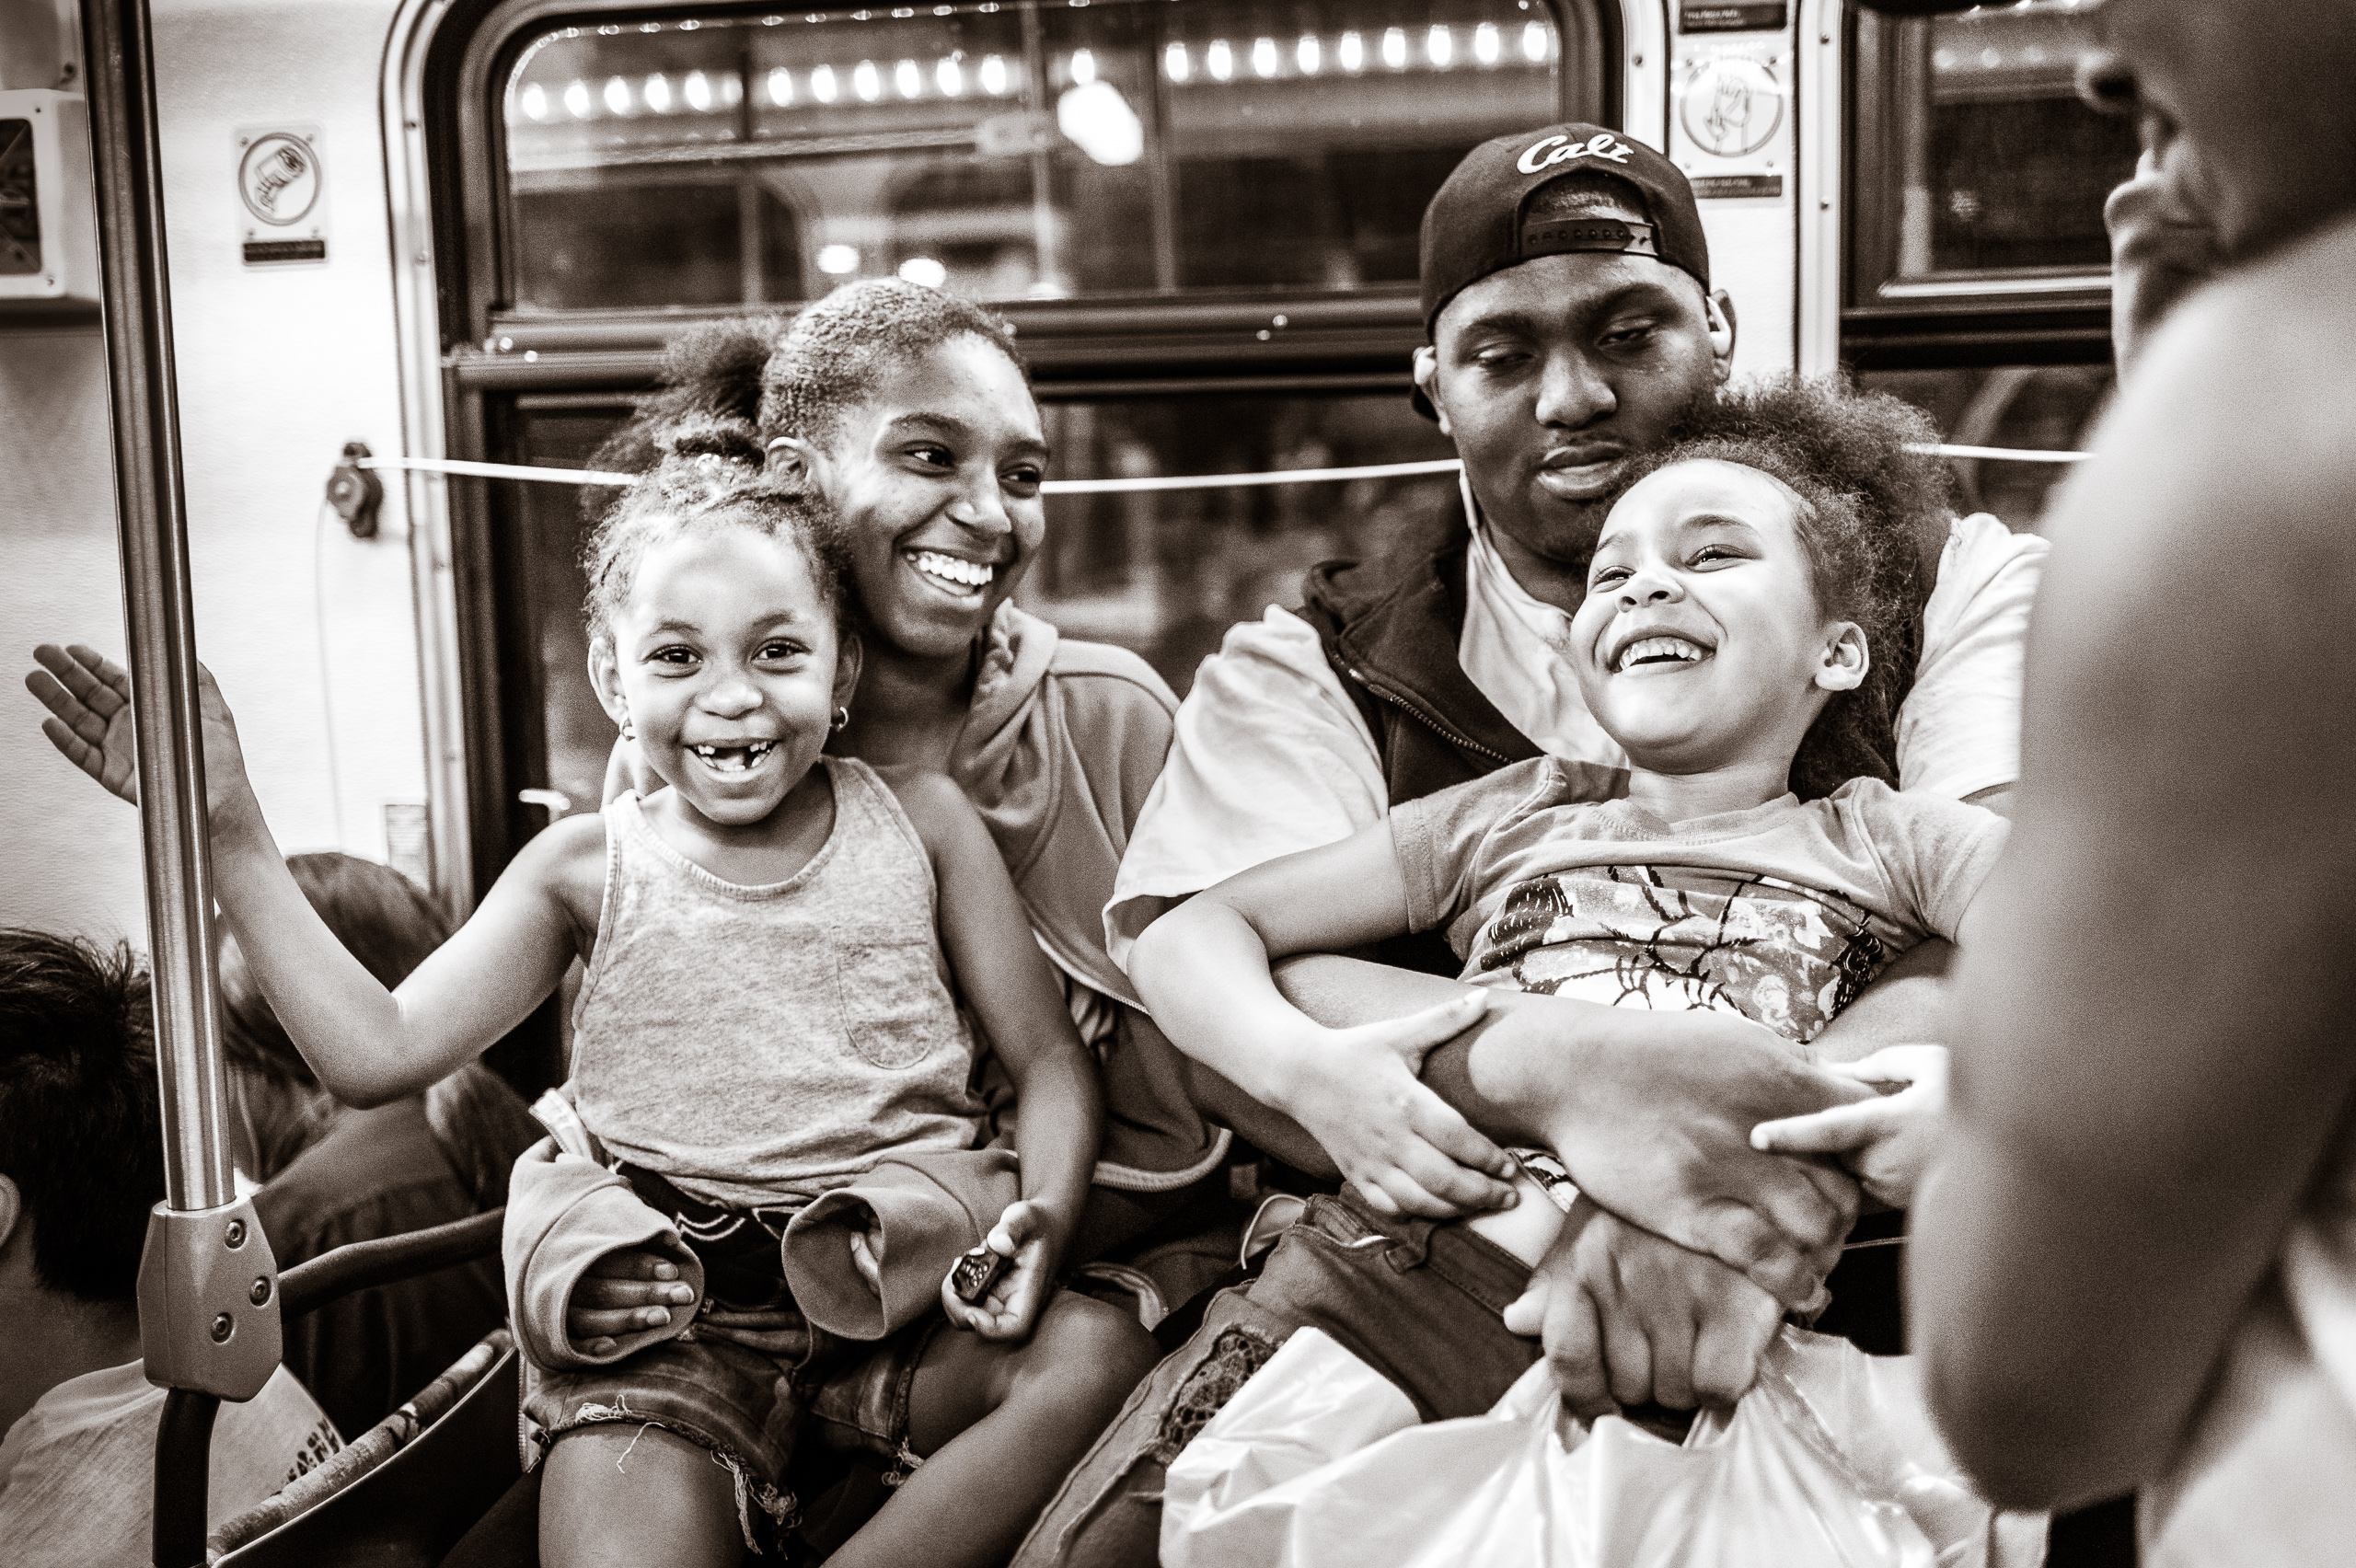 two kids and two adults riding the Blue Line in happy conversation